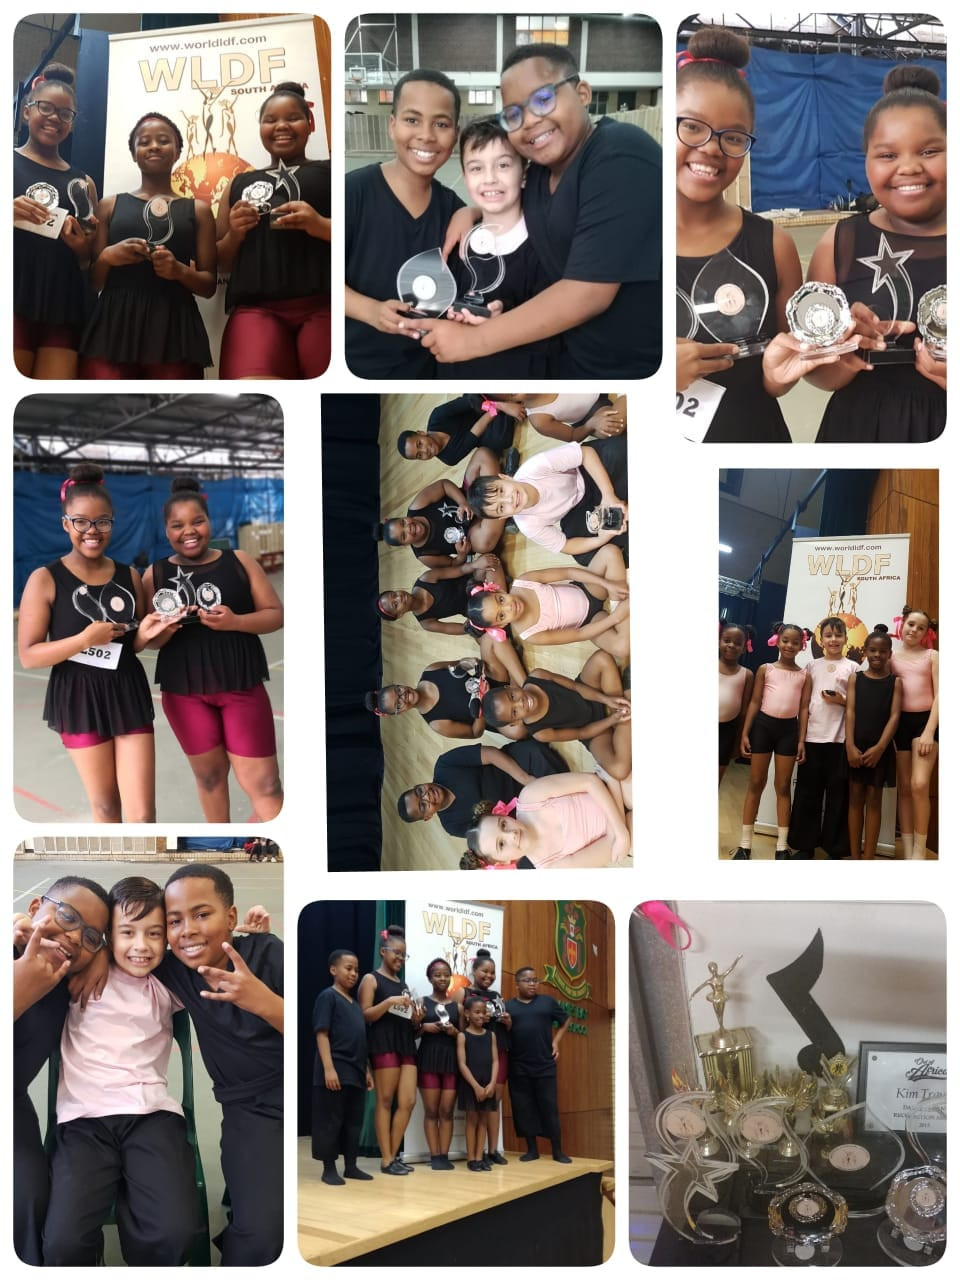 Body Rock School of Performing Arts to perform at the Creative Angels Fashion Benefit CAFB2018 Fashion Show